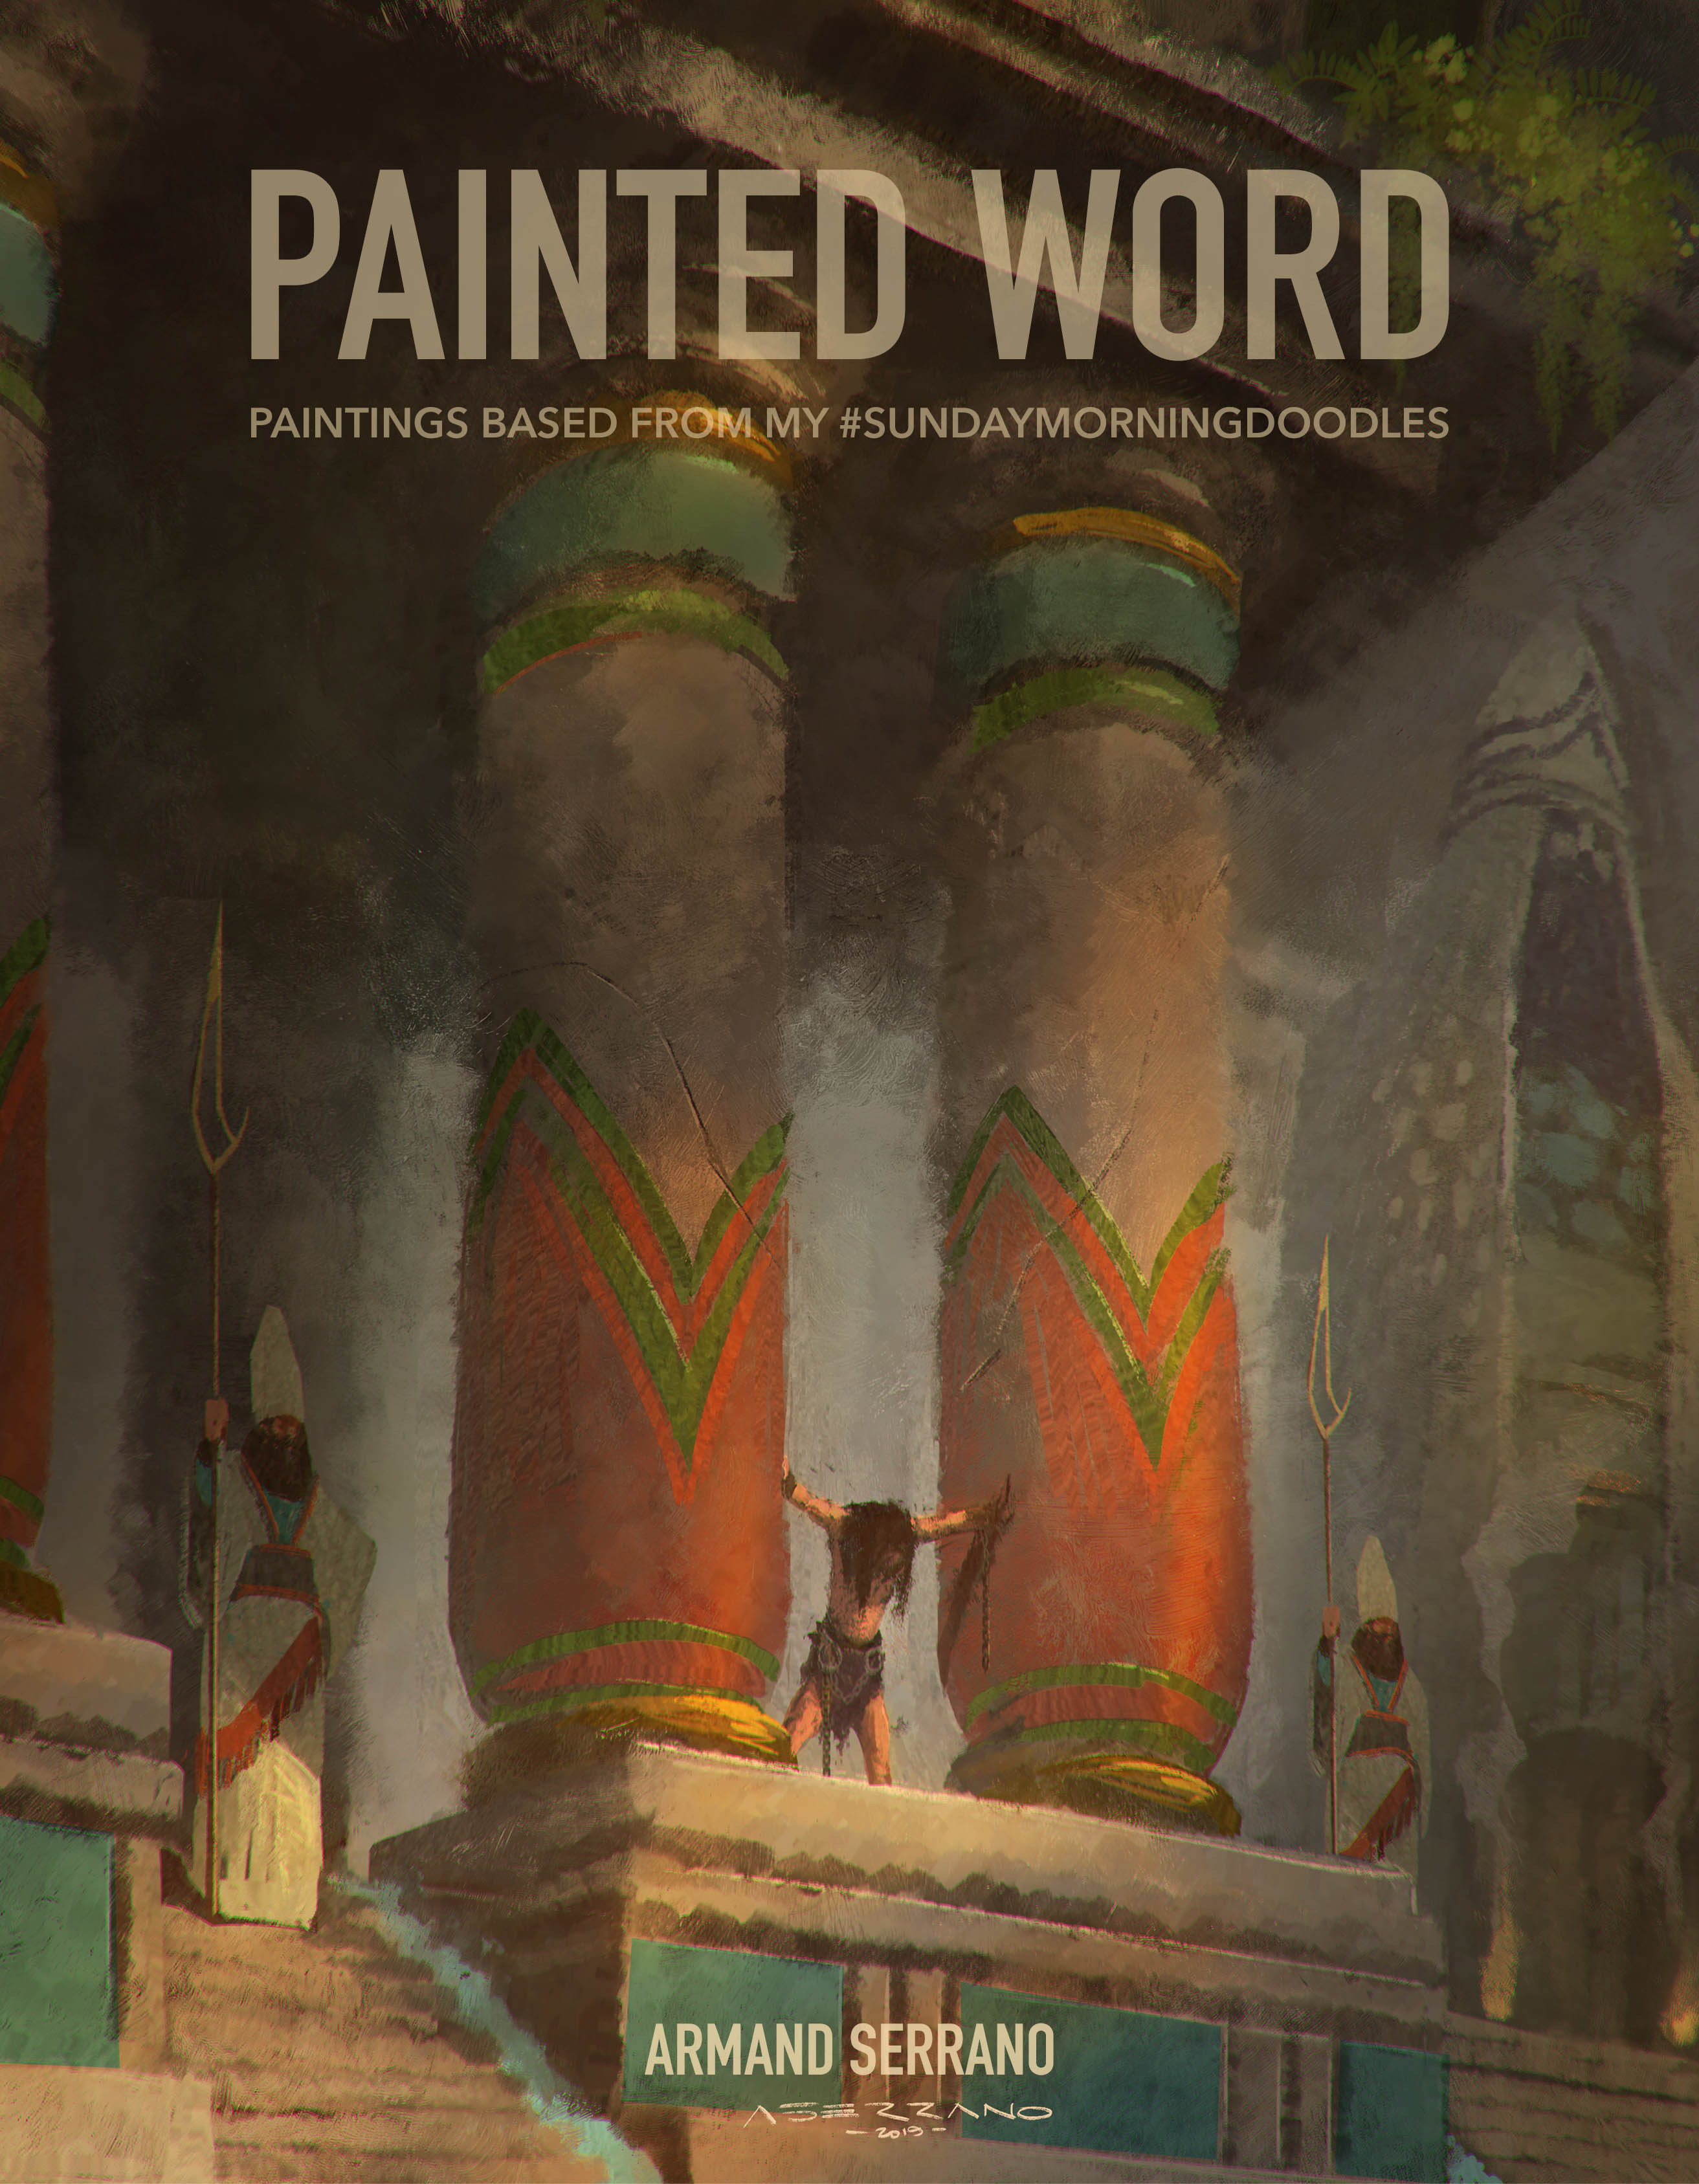 Cover of my book, Painted Word.